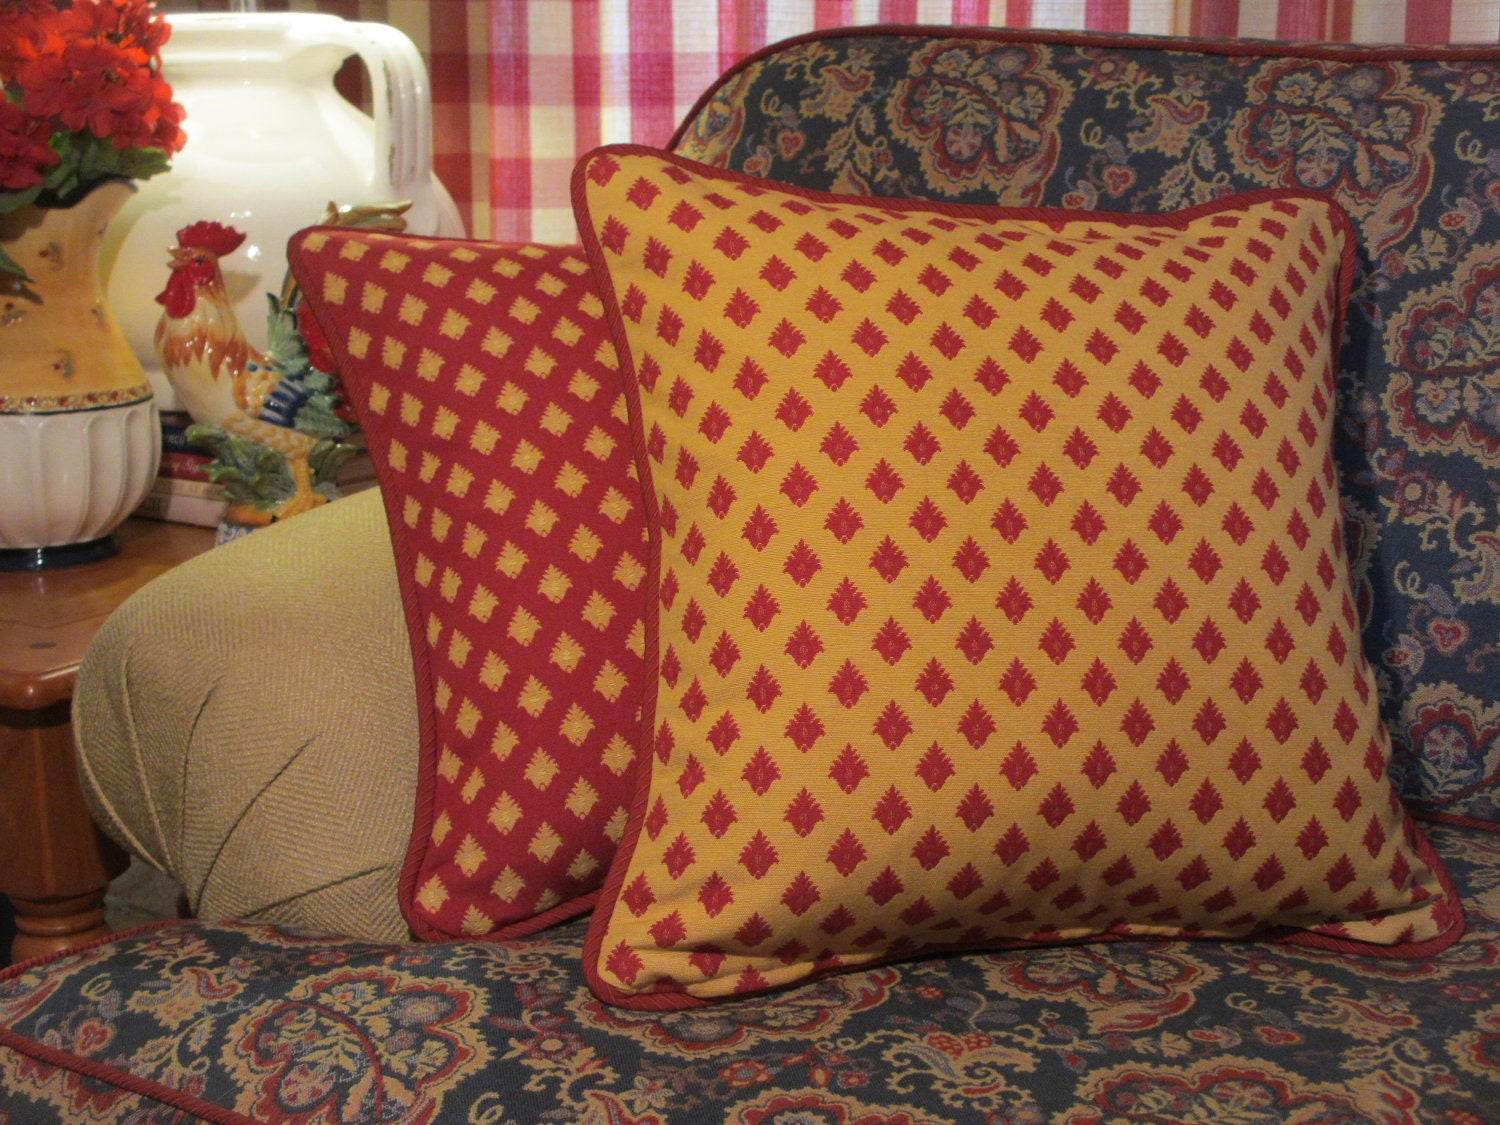 Red And Yellow Decorative Pillows : French Country Pillow Cover Red and Yellow Pillow Pompom